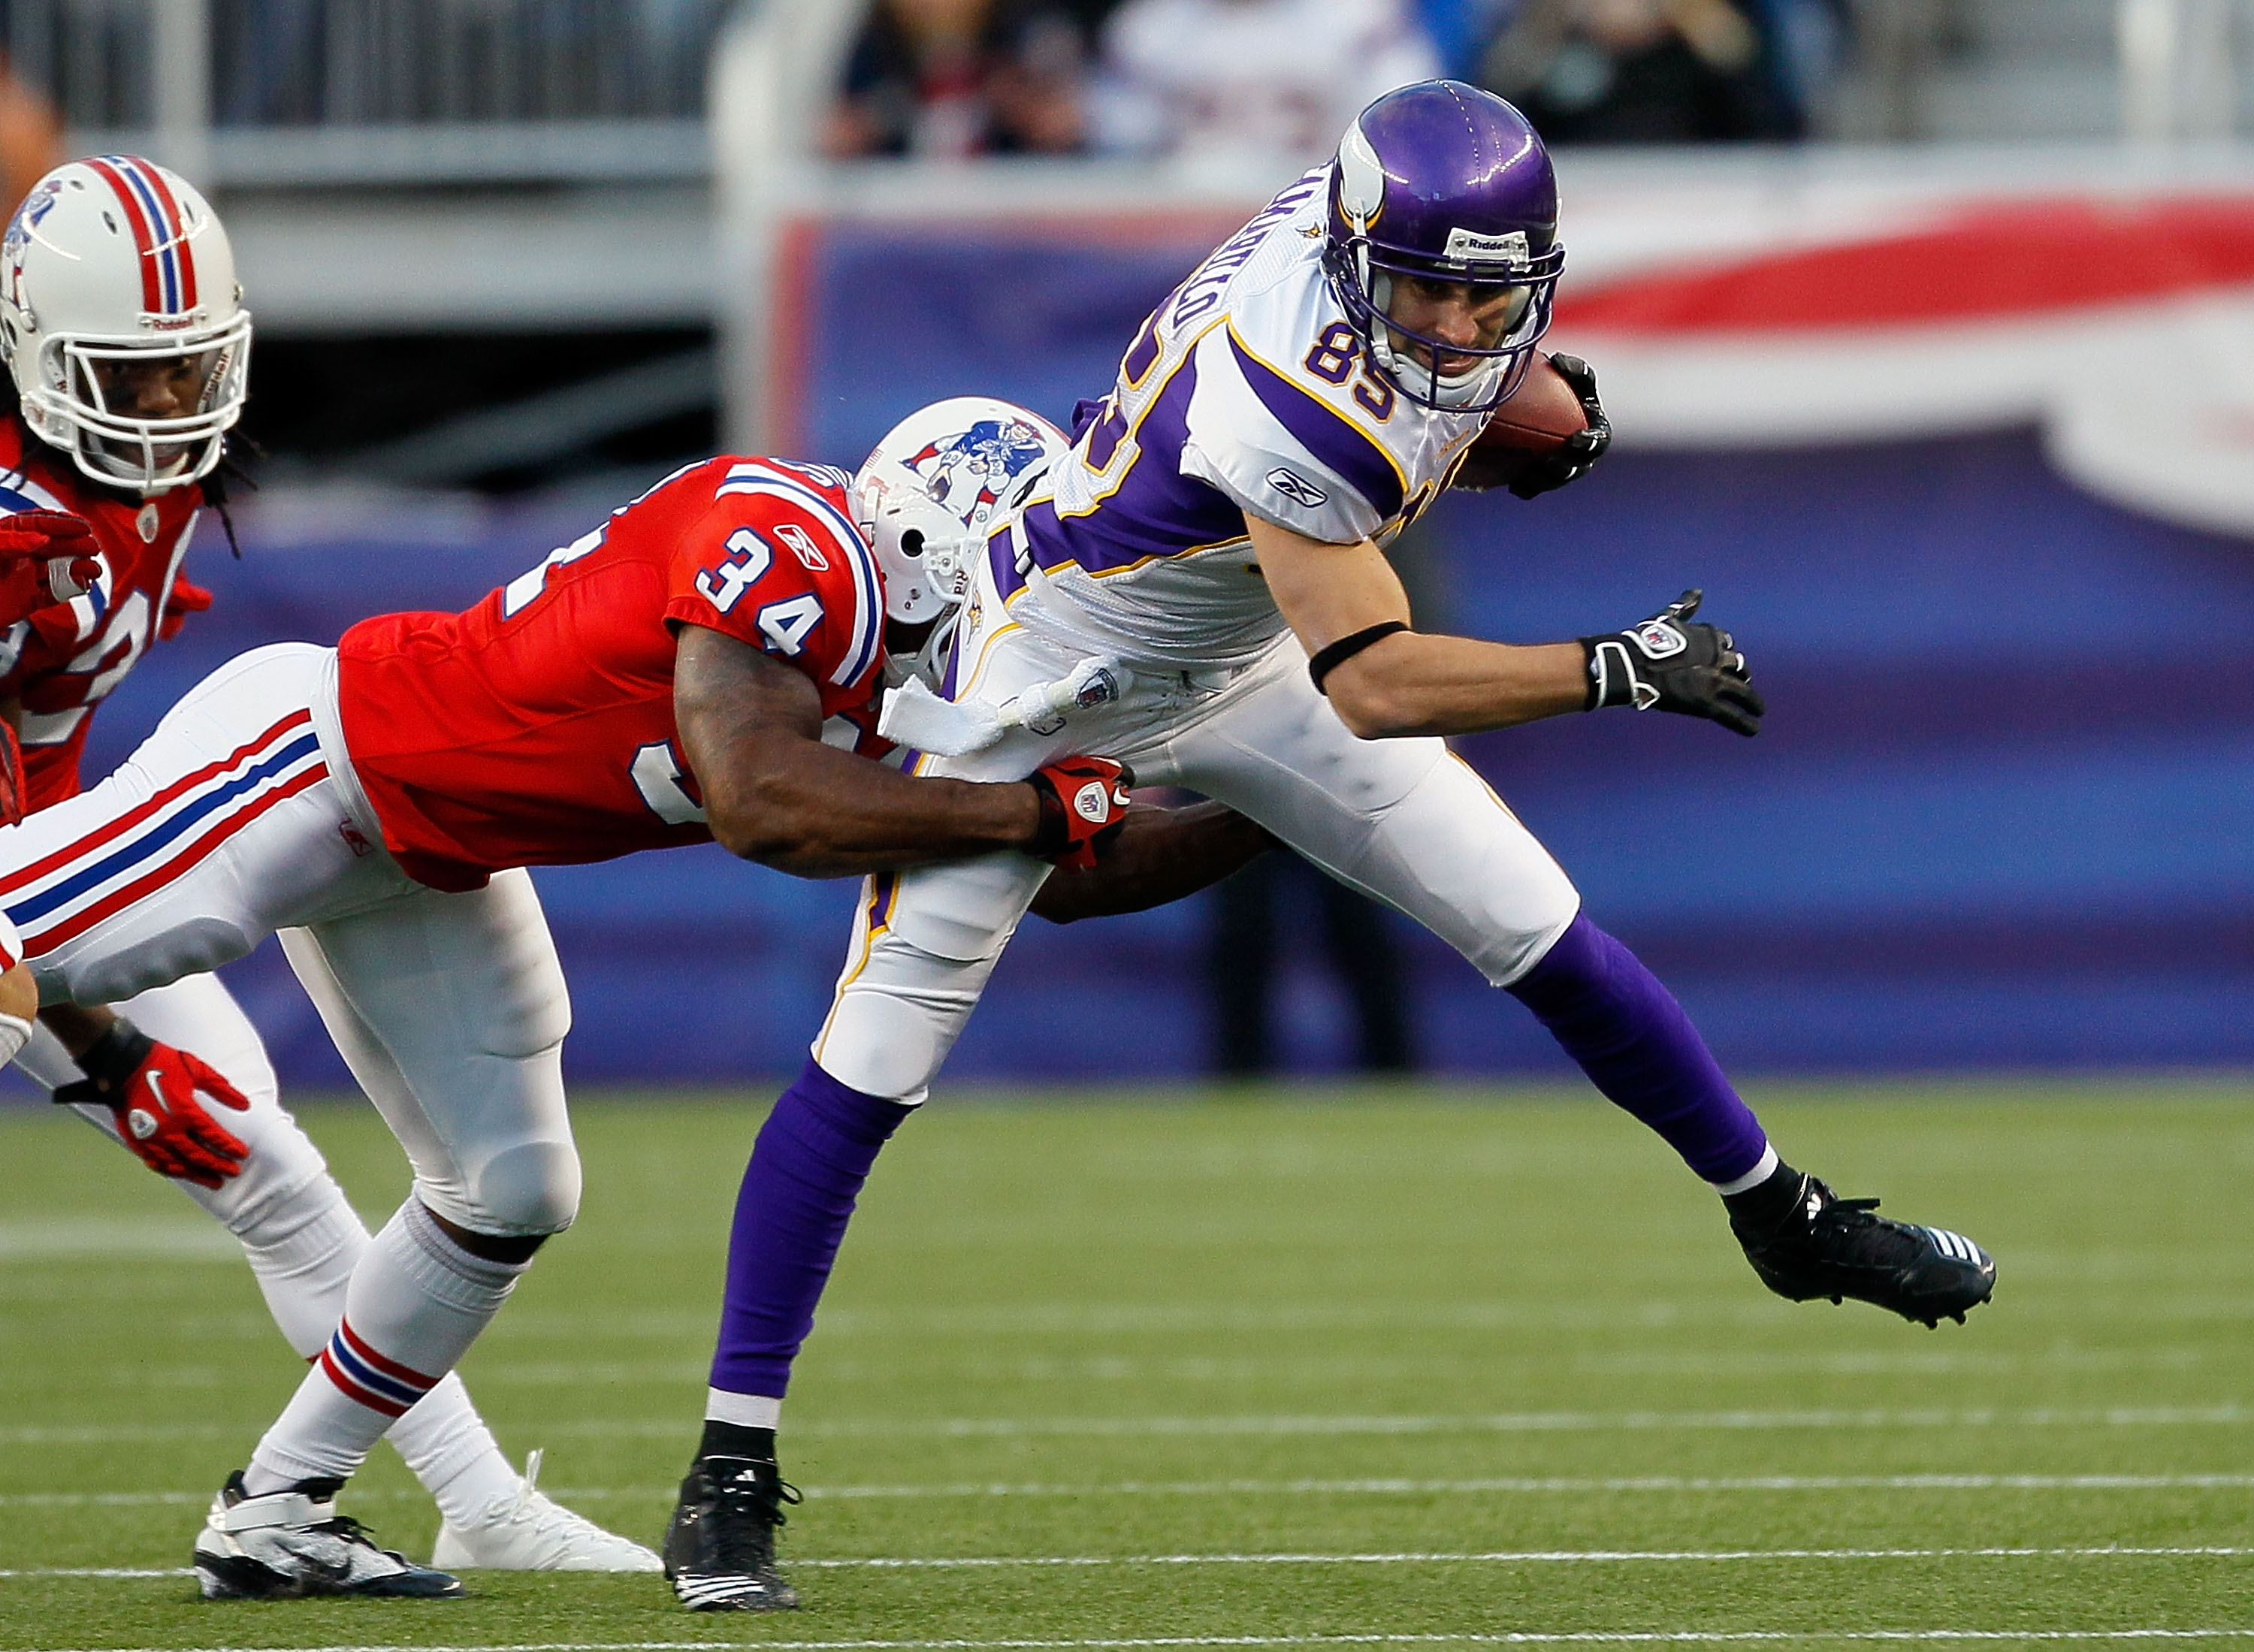 FOXBORO, MA - OCTOBER 31:  Greg Camarillo #85 of the Minnesota Vikings is stopped by Sammy Morris #34 of the New England Patriots at Gillette Stadium on October 31, 2010 in Foxboro, Massachusetts. (Photo by Jim Rogash/Getty Images)